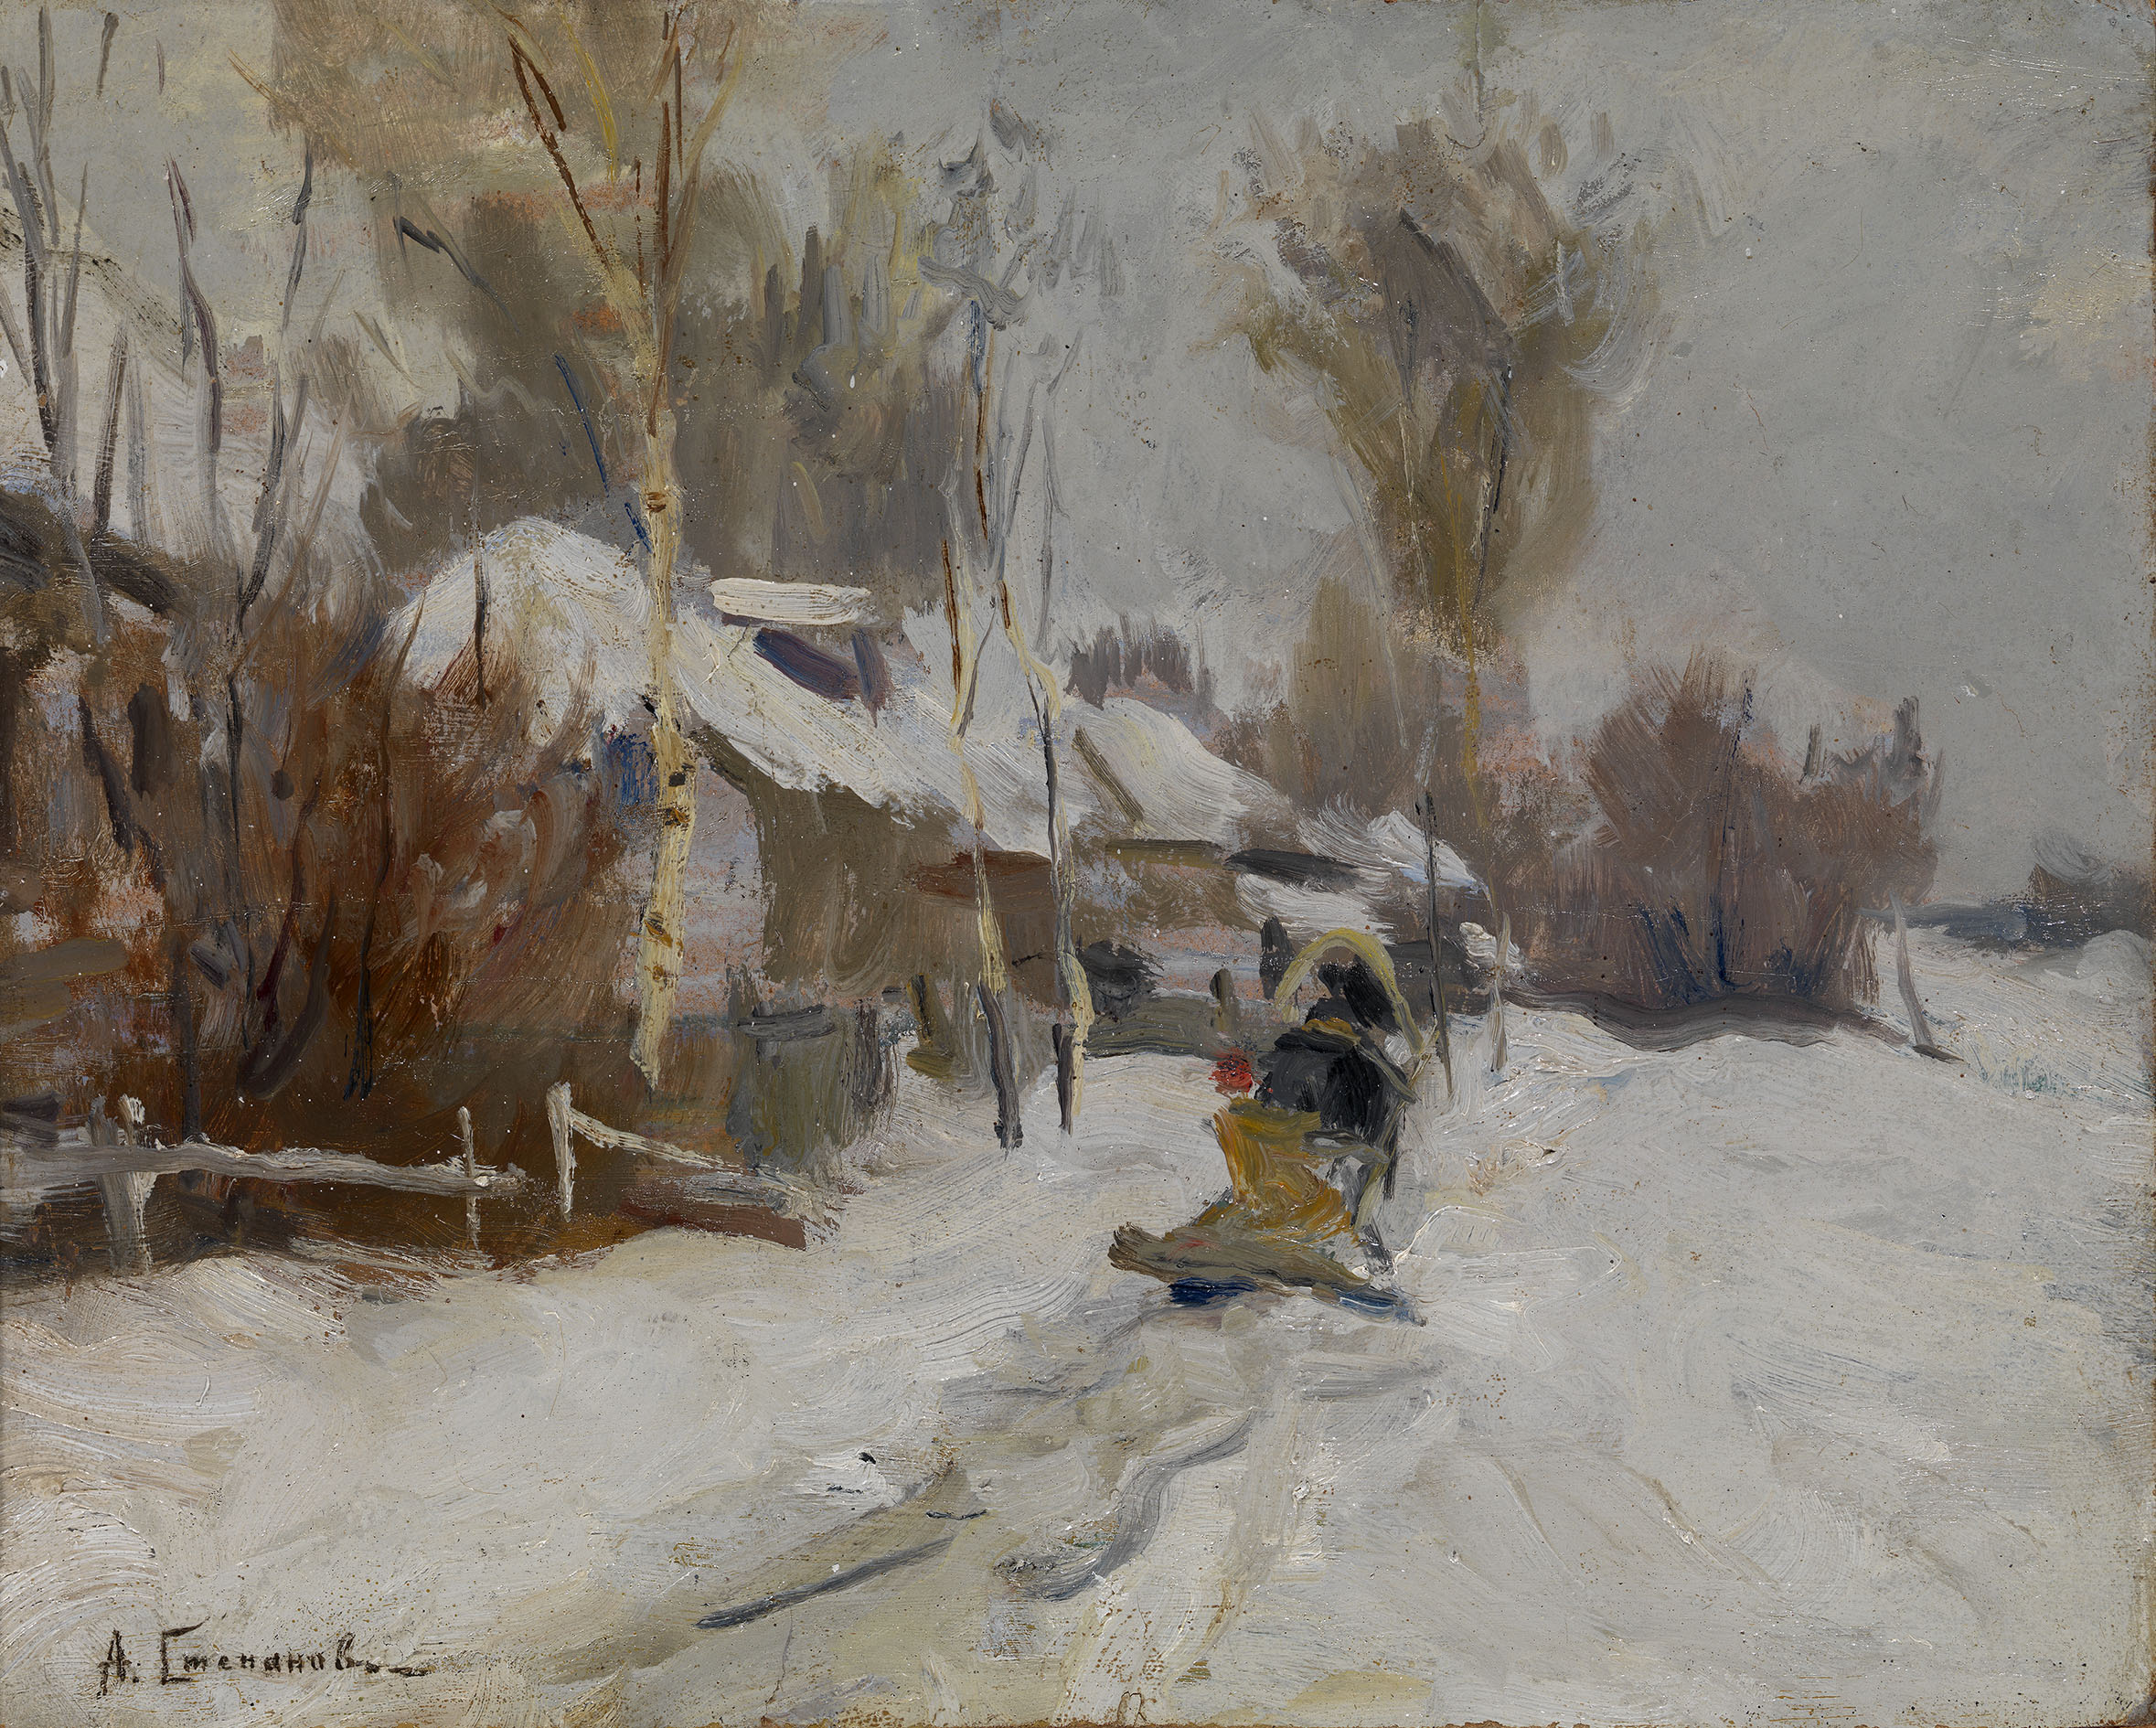 STEPANOV, ALEXEI Winter Scene with Horse Sledge